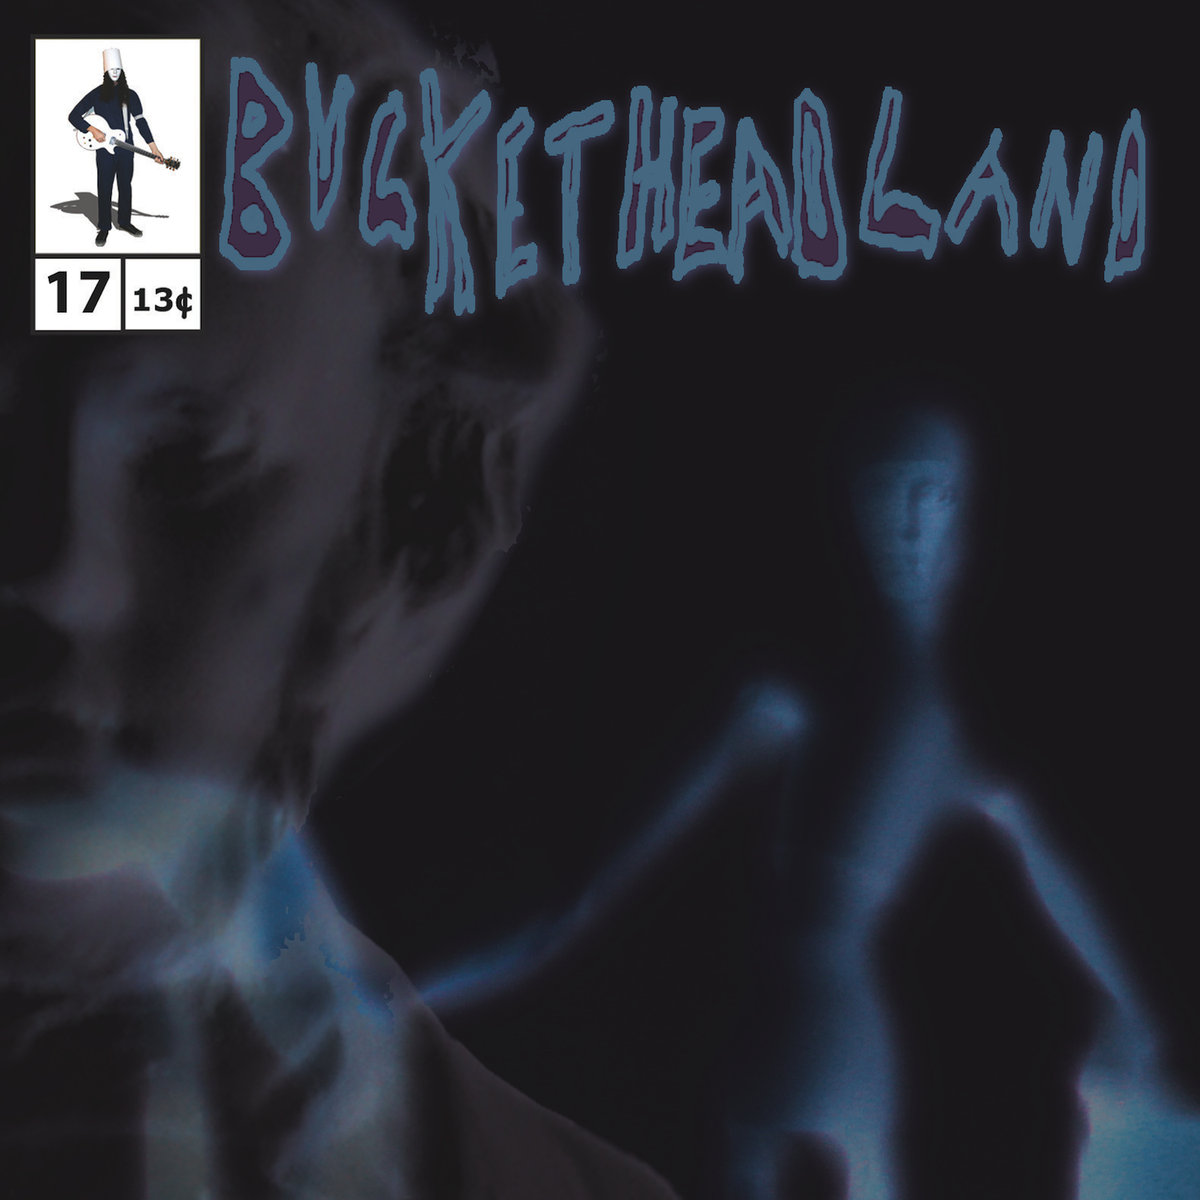 Buckethead - Pike 17: The Spirit Winds (2013)